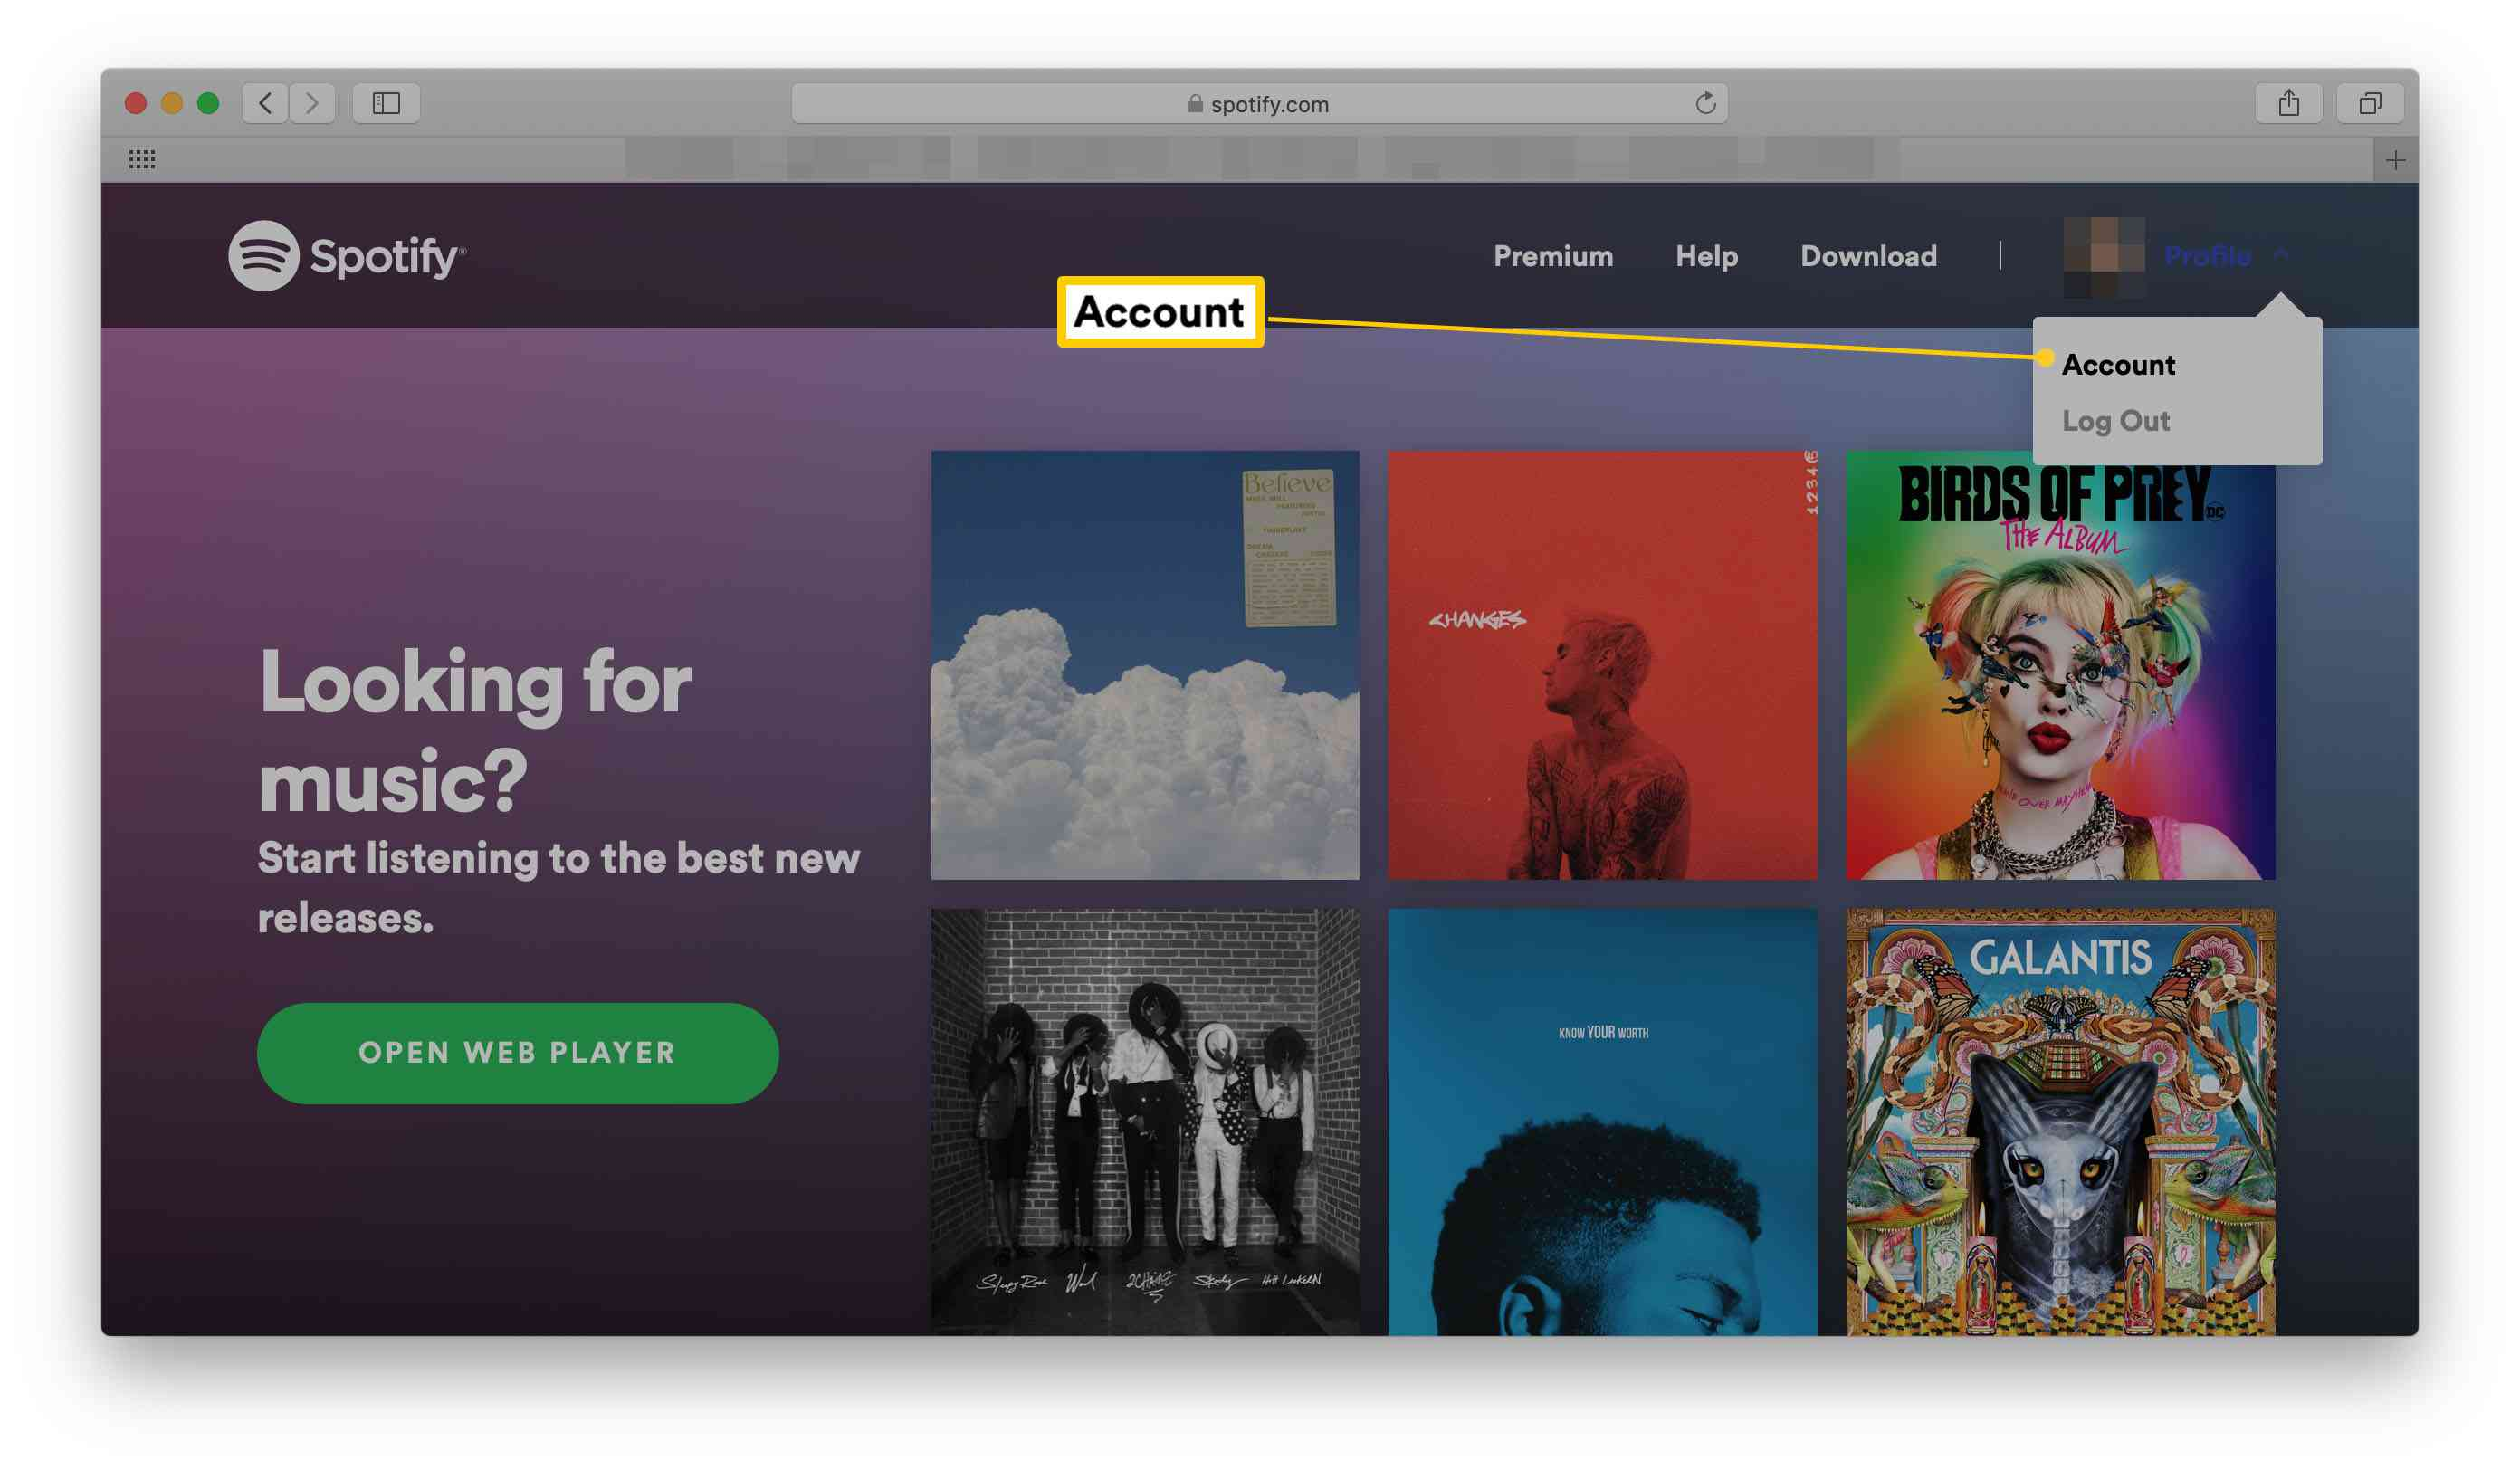 The Spotify homepage with Account highlighted